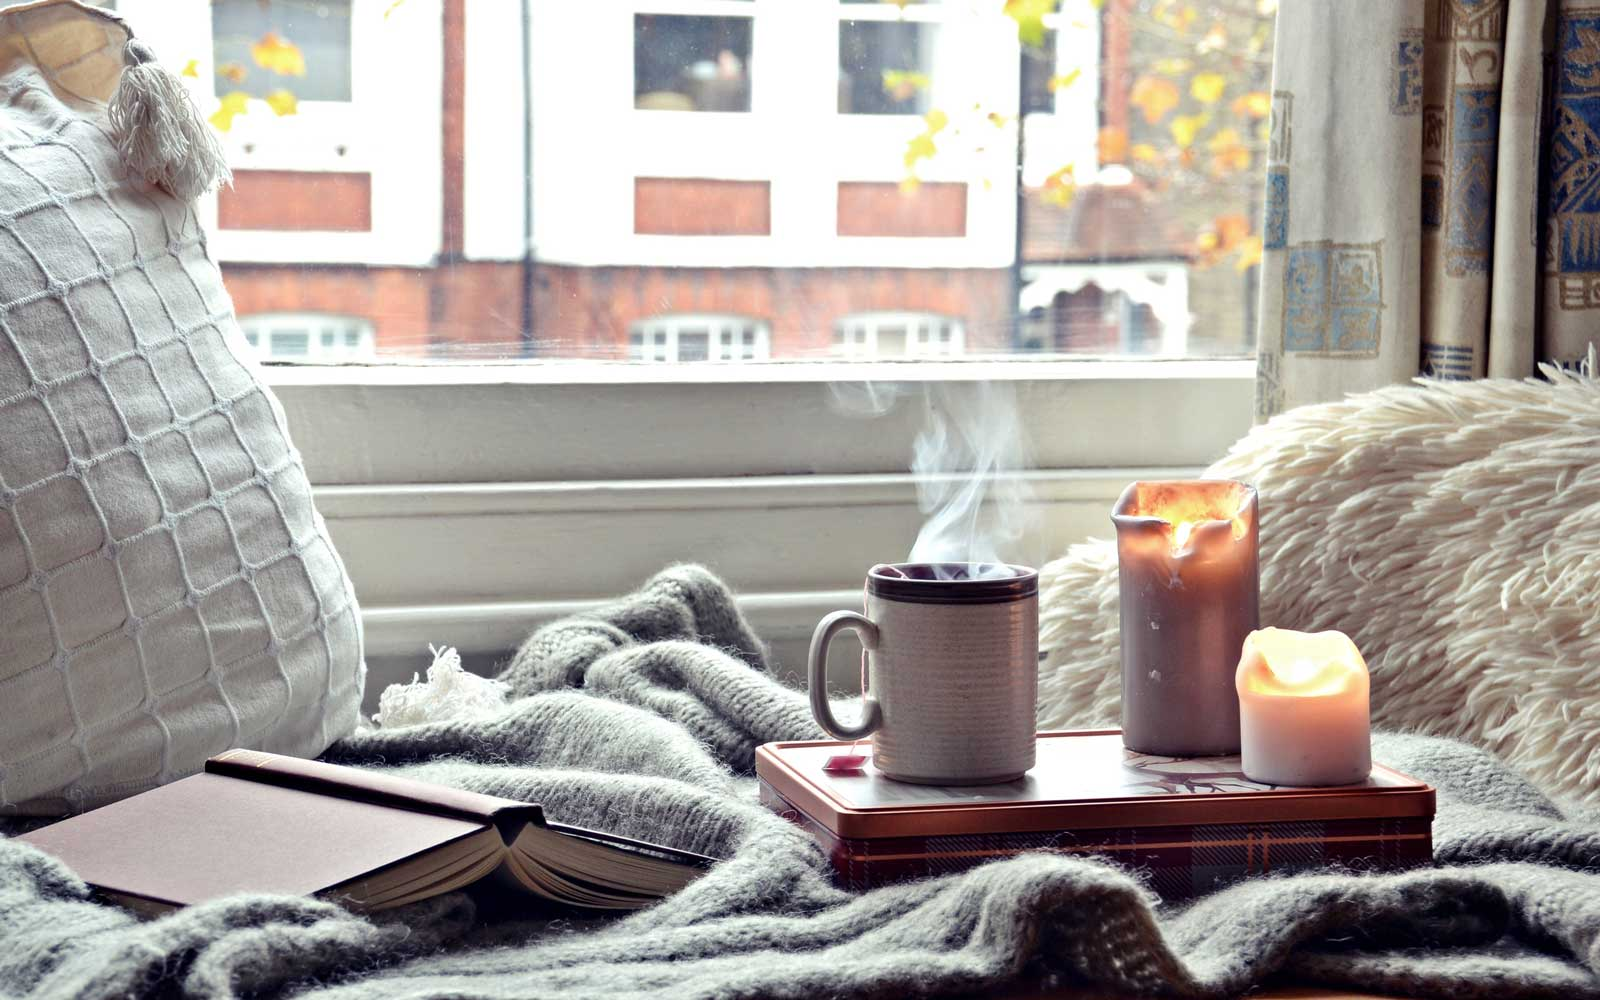 How to Have a Hygge Staycation